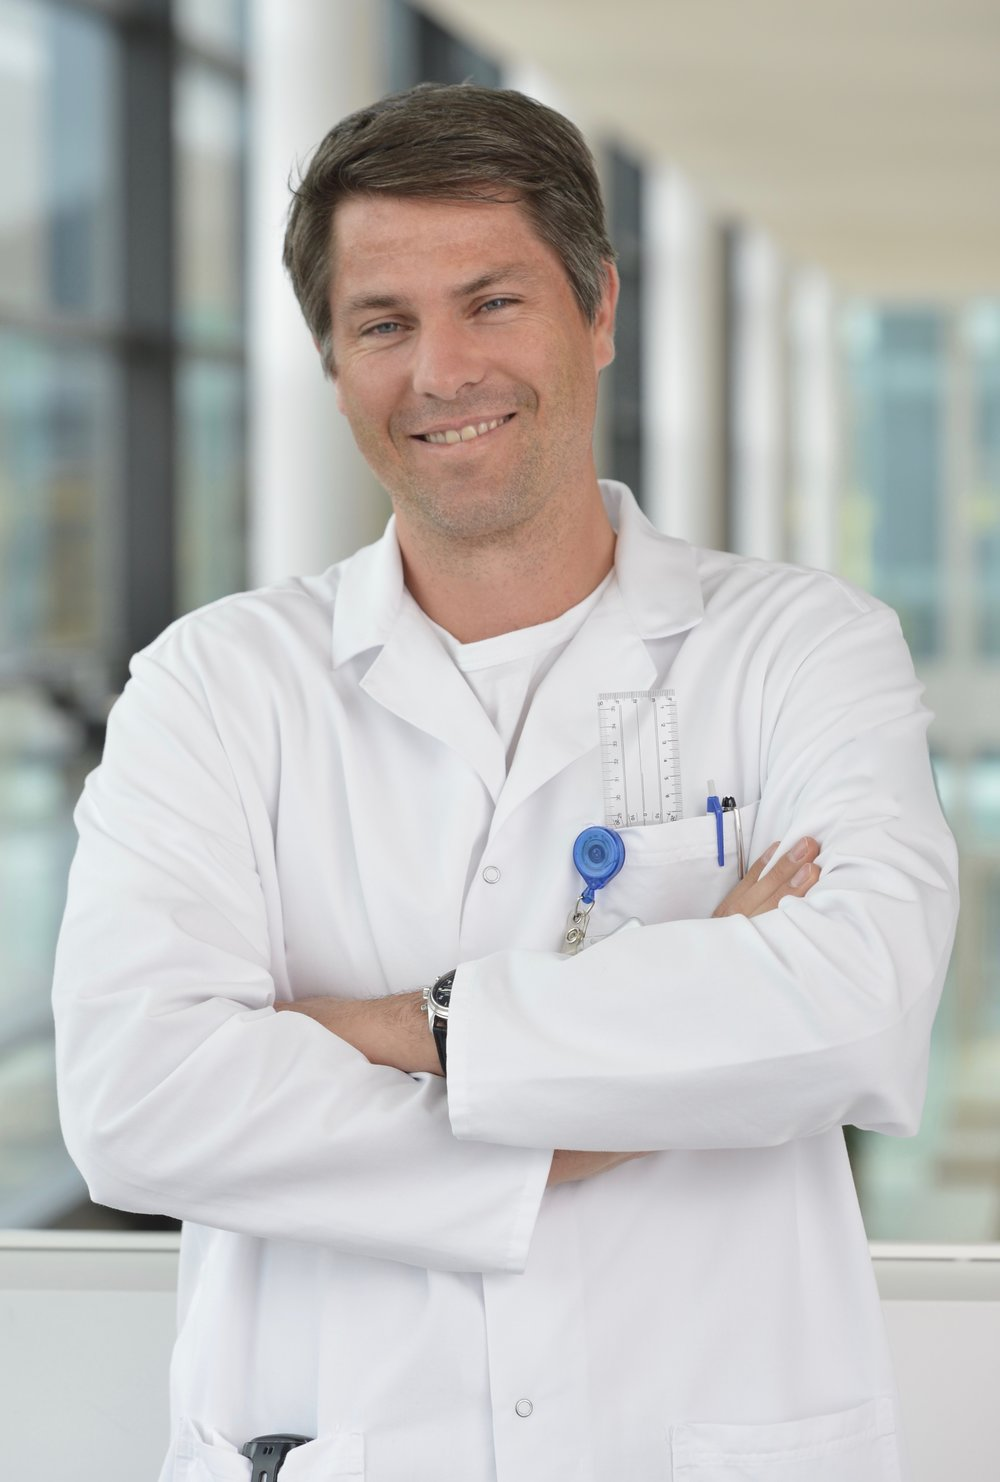 Matthias Schmied- Doctor of Medicine, MD. Specialized in Orthopaedics and Traumatology. He studied medicine at the University of Zurich (Universitätsspital, Zürich) and has been practicing since 2000. Dr. Schmied has worked in leading healthcare institutions in Switzerland, Germany and Scotland. Since 2016, he has run his own practice. Among others, he is a member of the International Society for Hip Arthroscopy (ISHA) and the Swiss Medical Association (Vereinigung der Schweizer Ärztinnen und Ärzte, FMH). - Dr. med. Matthias Schmied